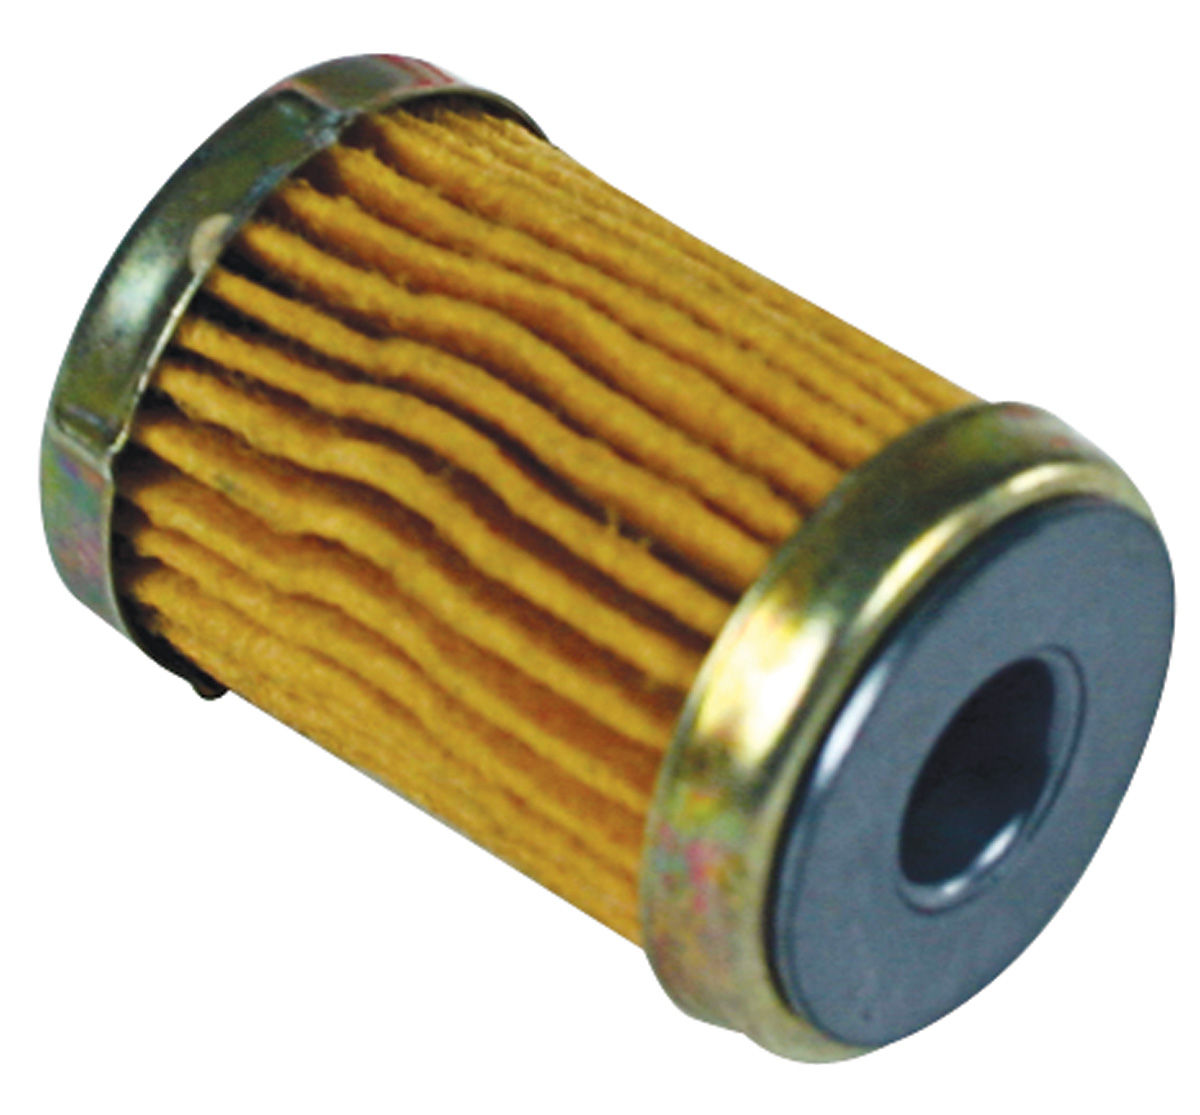 hight resolution of fuel filter element quadrajet 5 8 x 2 tap to enlarge